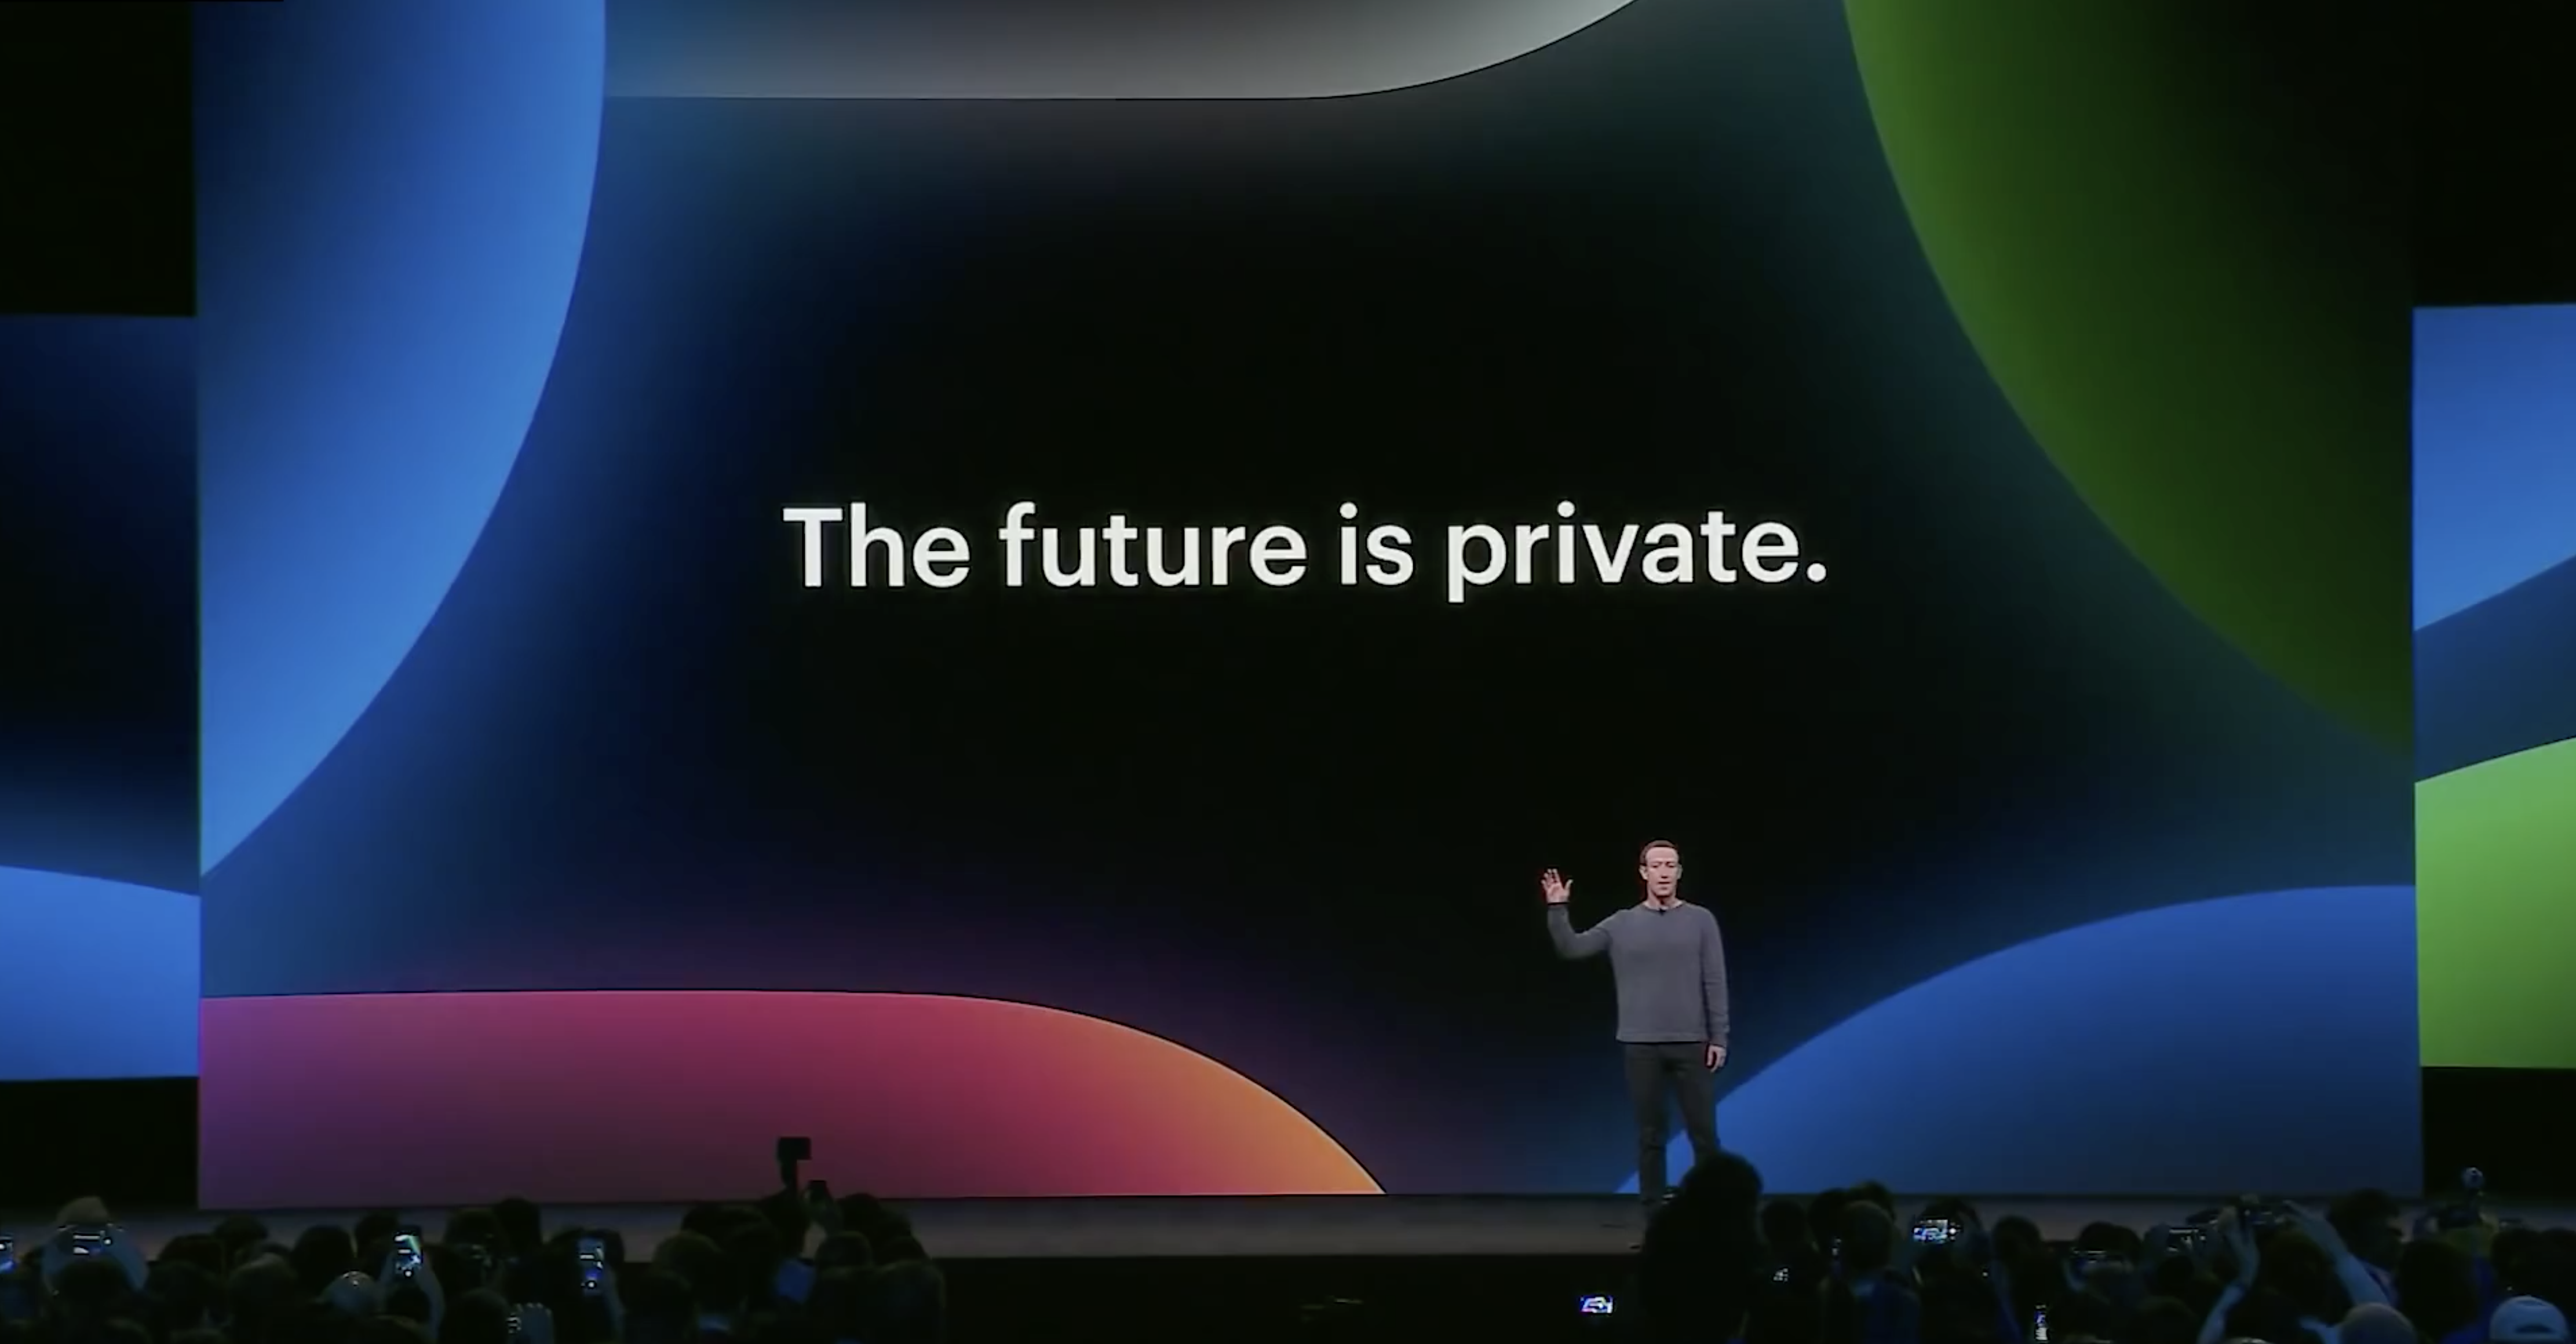 Facebook's F8 conference was a cringe-worthy PR exercise to reclaim privacy